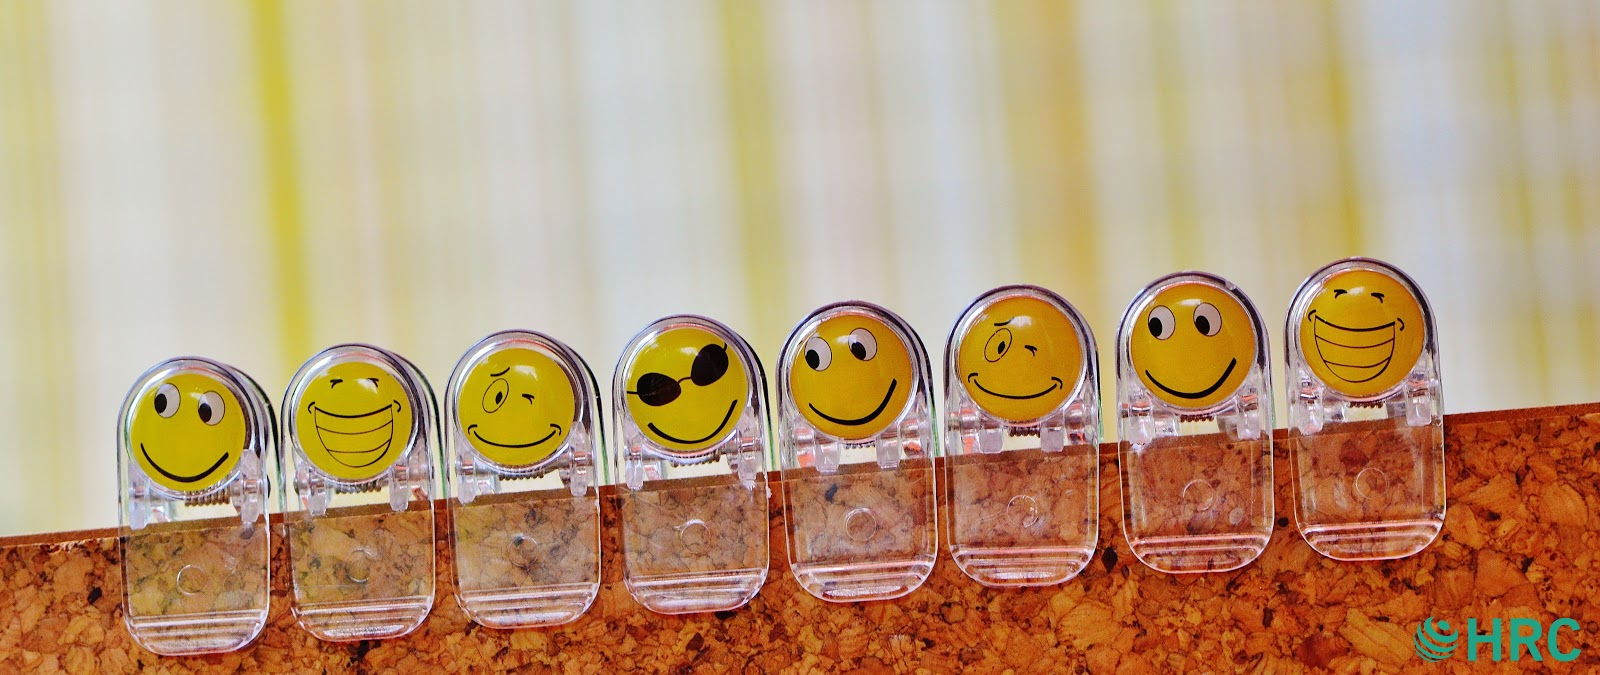 smilies-funny-emoticon-faces-160760.jpeg